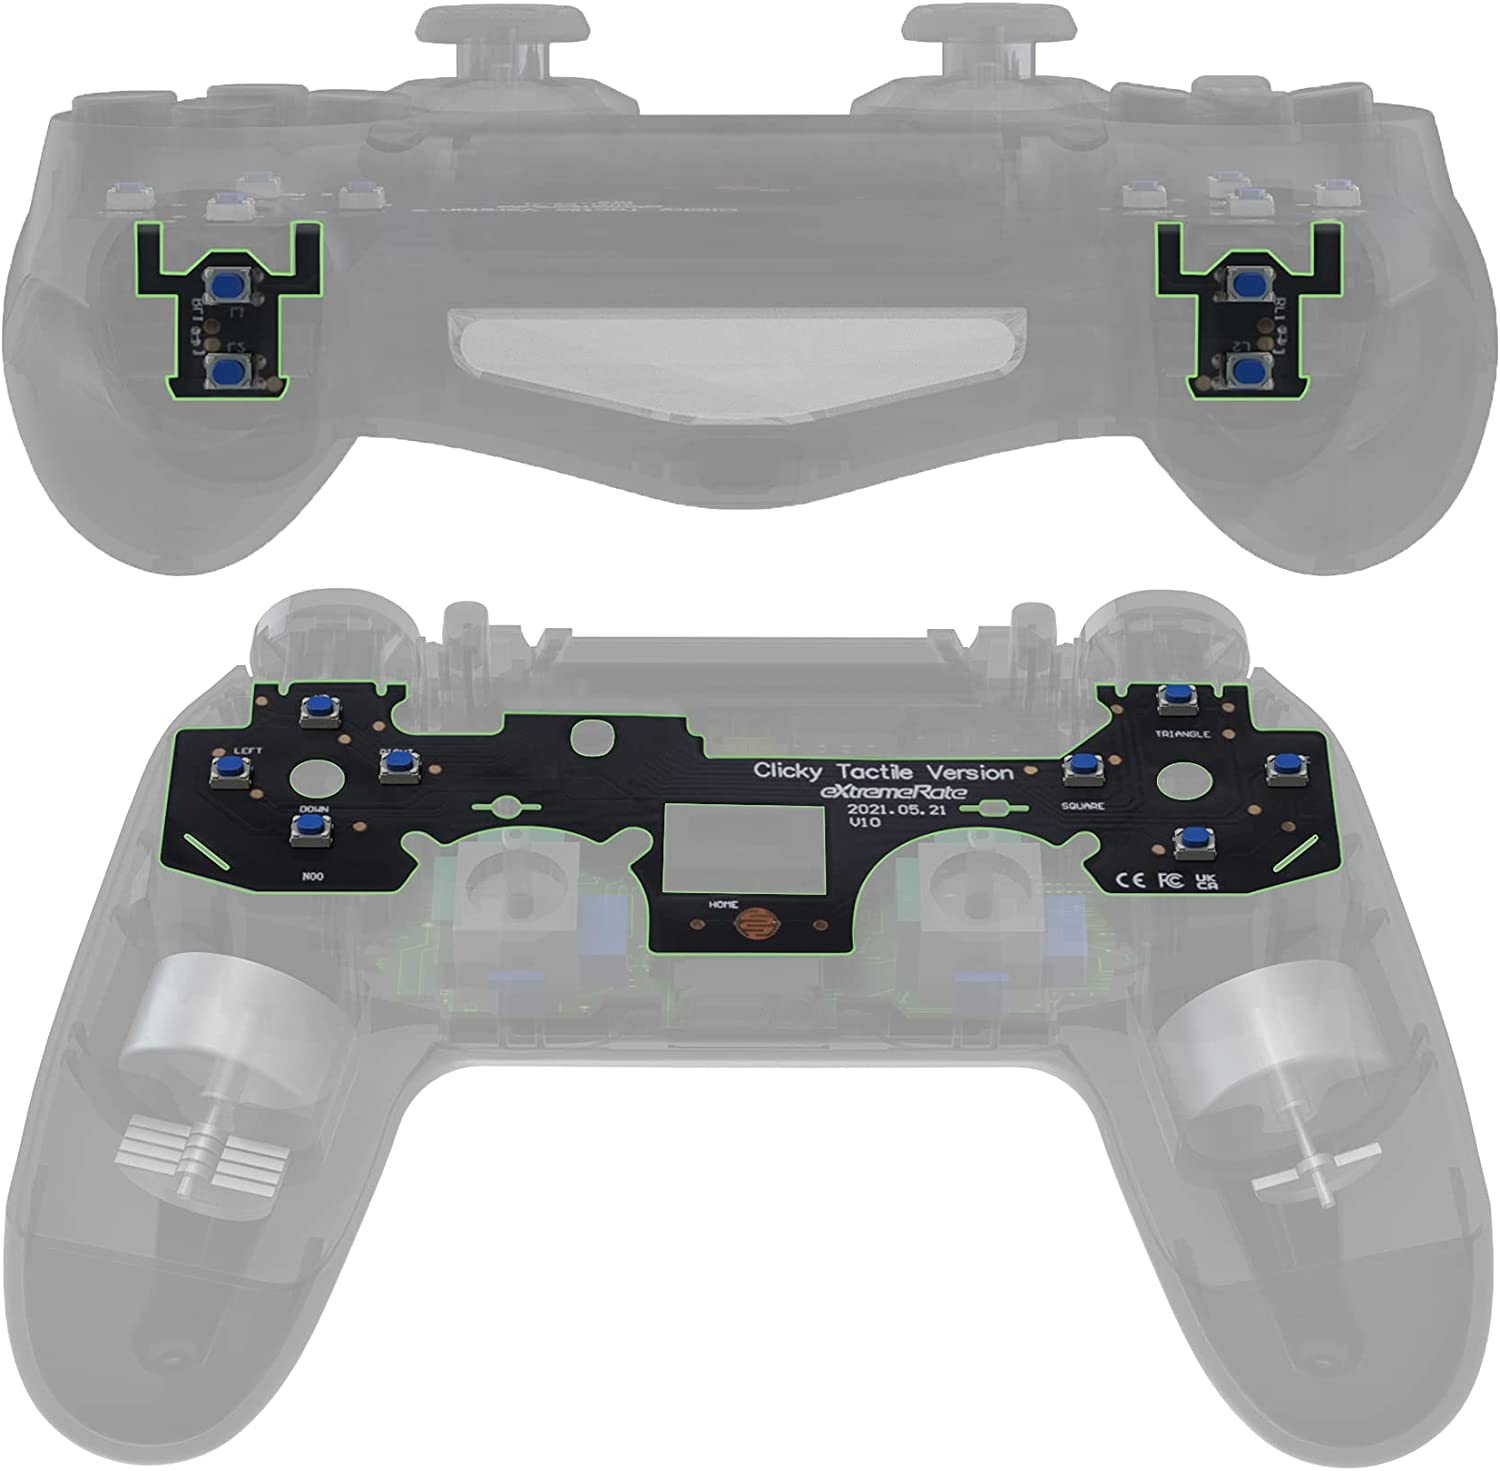 eXtremeRate Whole Tactile Clicky Kit Shoulder for safety Mail order cheap PS4 Controller